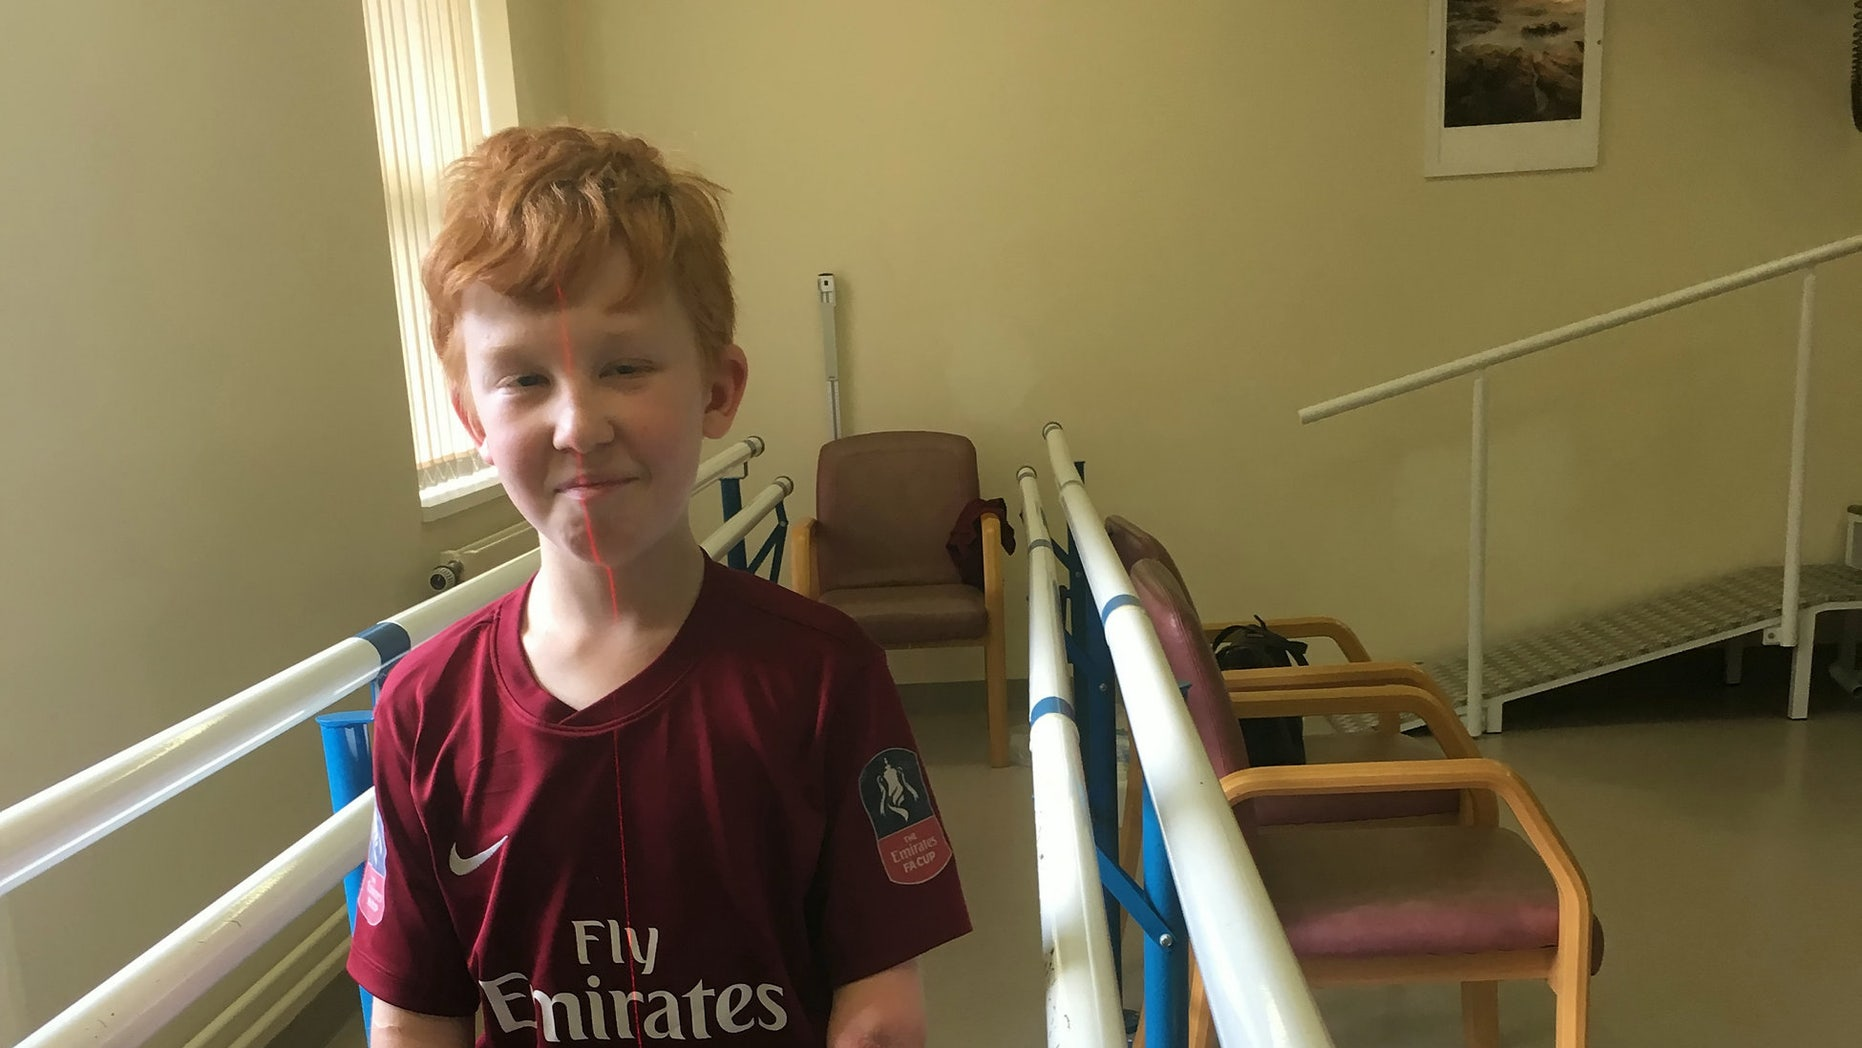 Marshall Janson, 10, is learning to walk again with brand new prosthetic limbs that allow him to bend his legs for the first time.